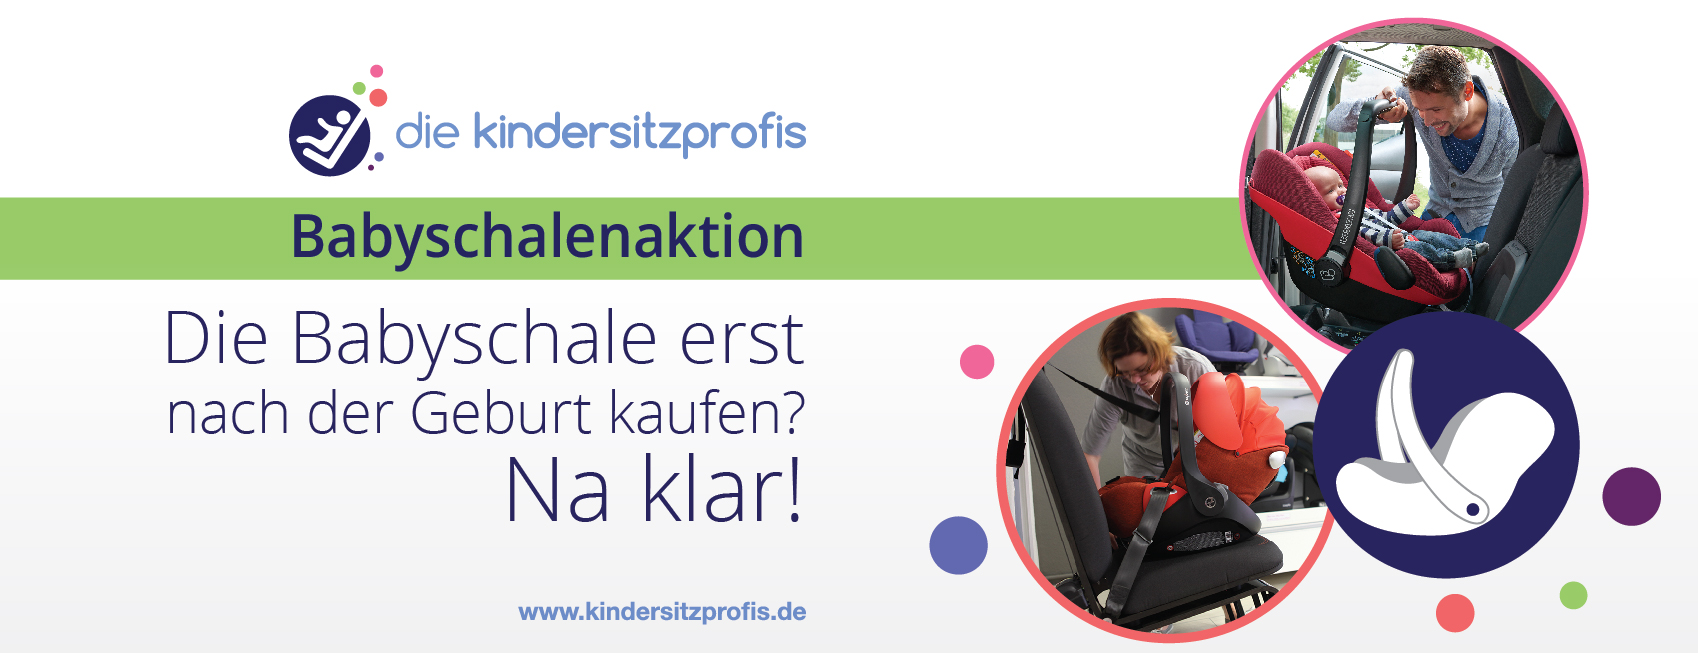 Facebook Cover Babyschalenaktion 2